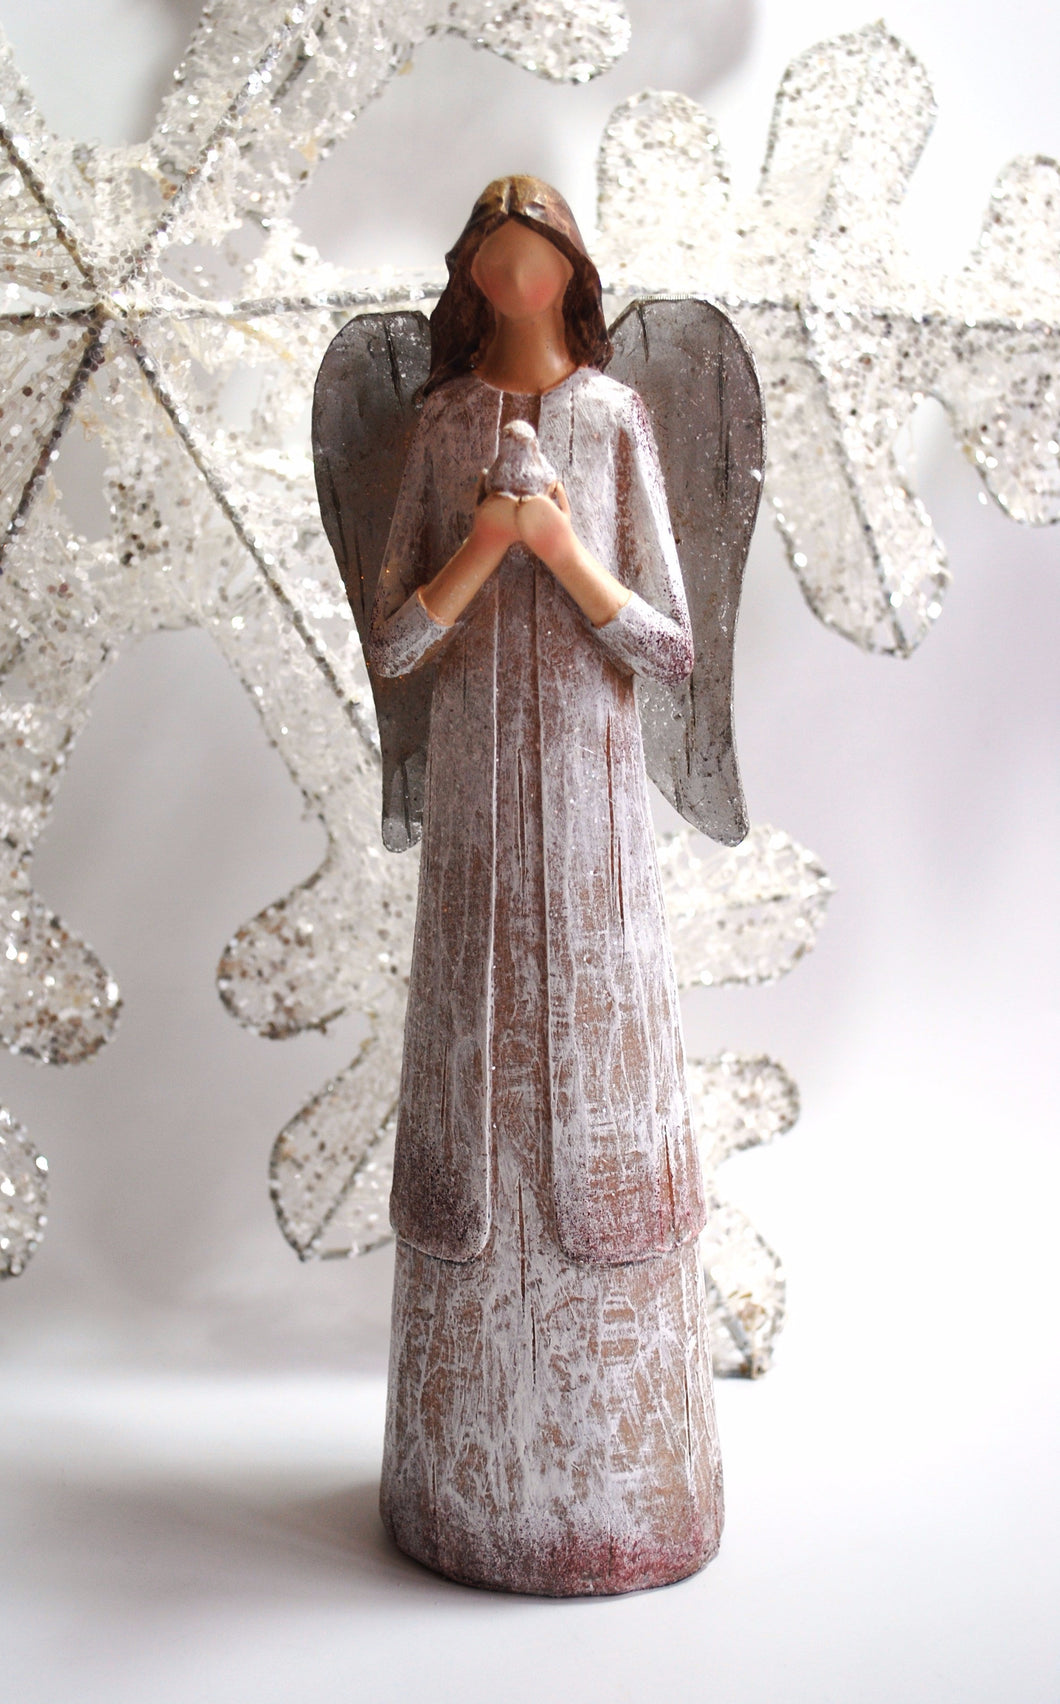 Large 29cm Angel Of Peace Statue Ornament Decorative Hand Carved Christmas Gift - Krystal Gifts UK